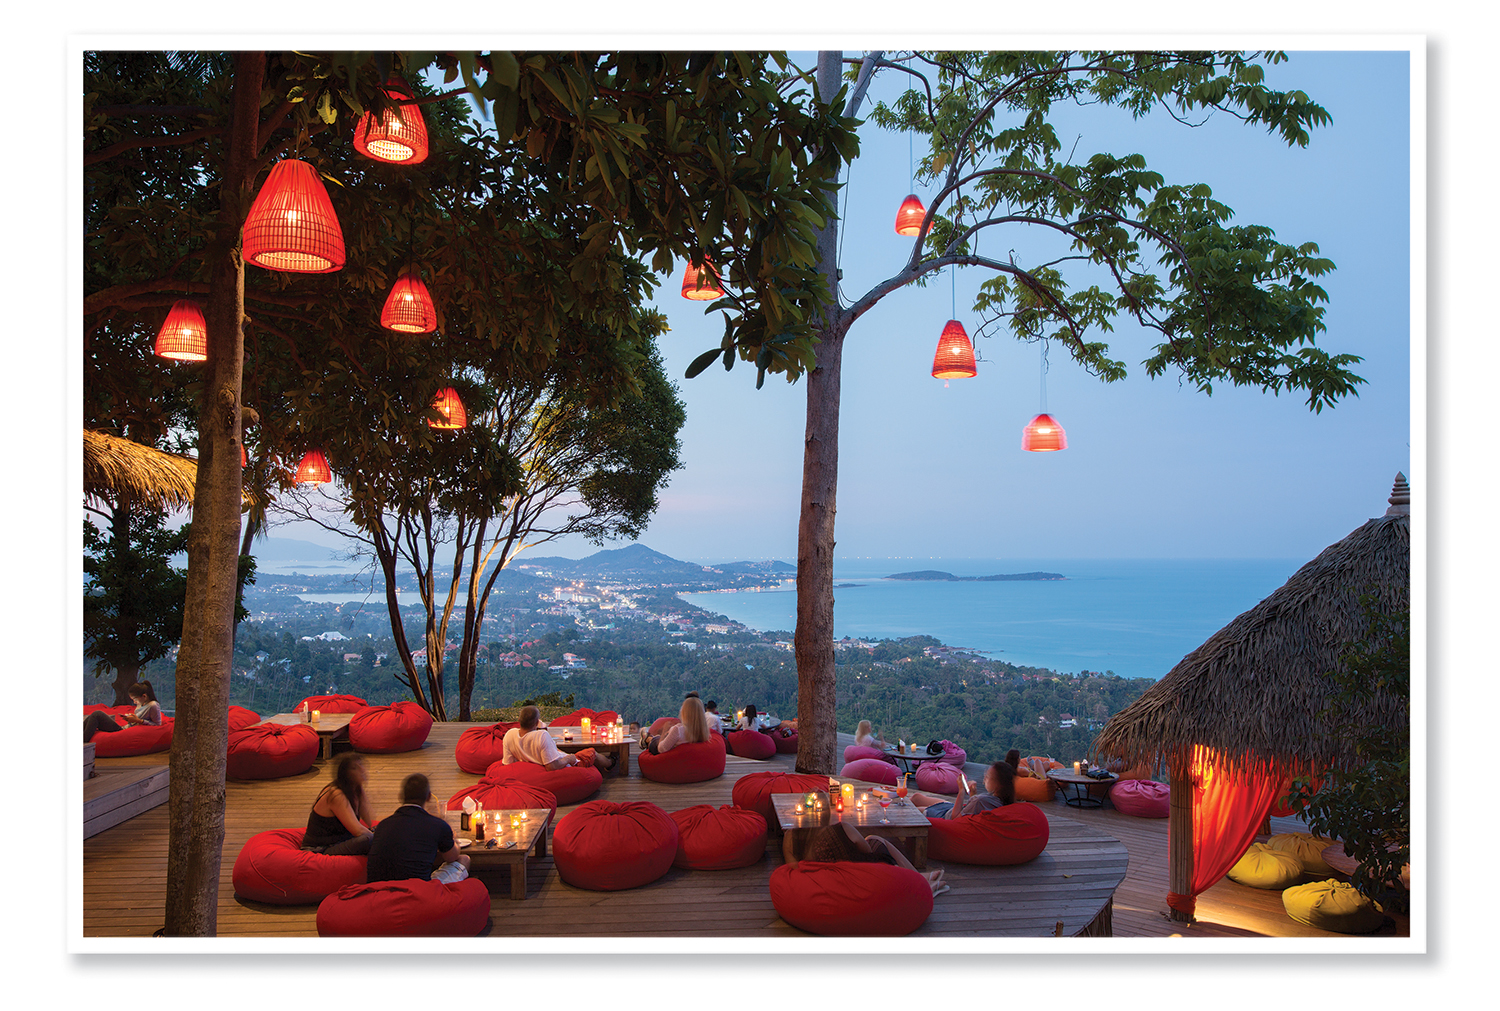 Reaching the Summit at The Jungle Club - Welcome to Samui